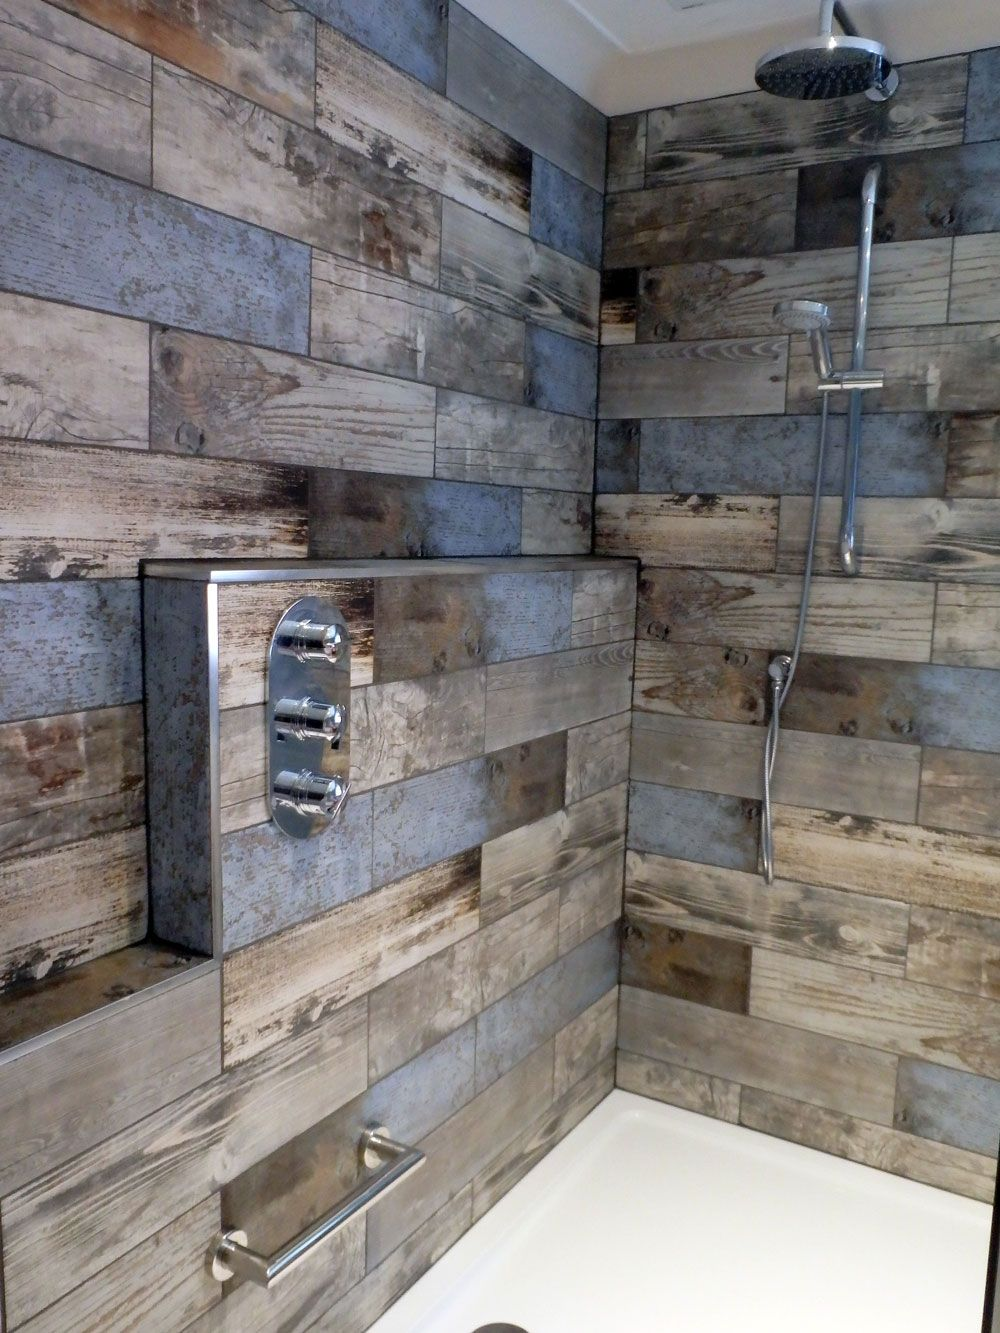 Wood Effect Tiles In Shower Area House Room Designs